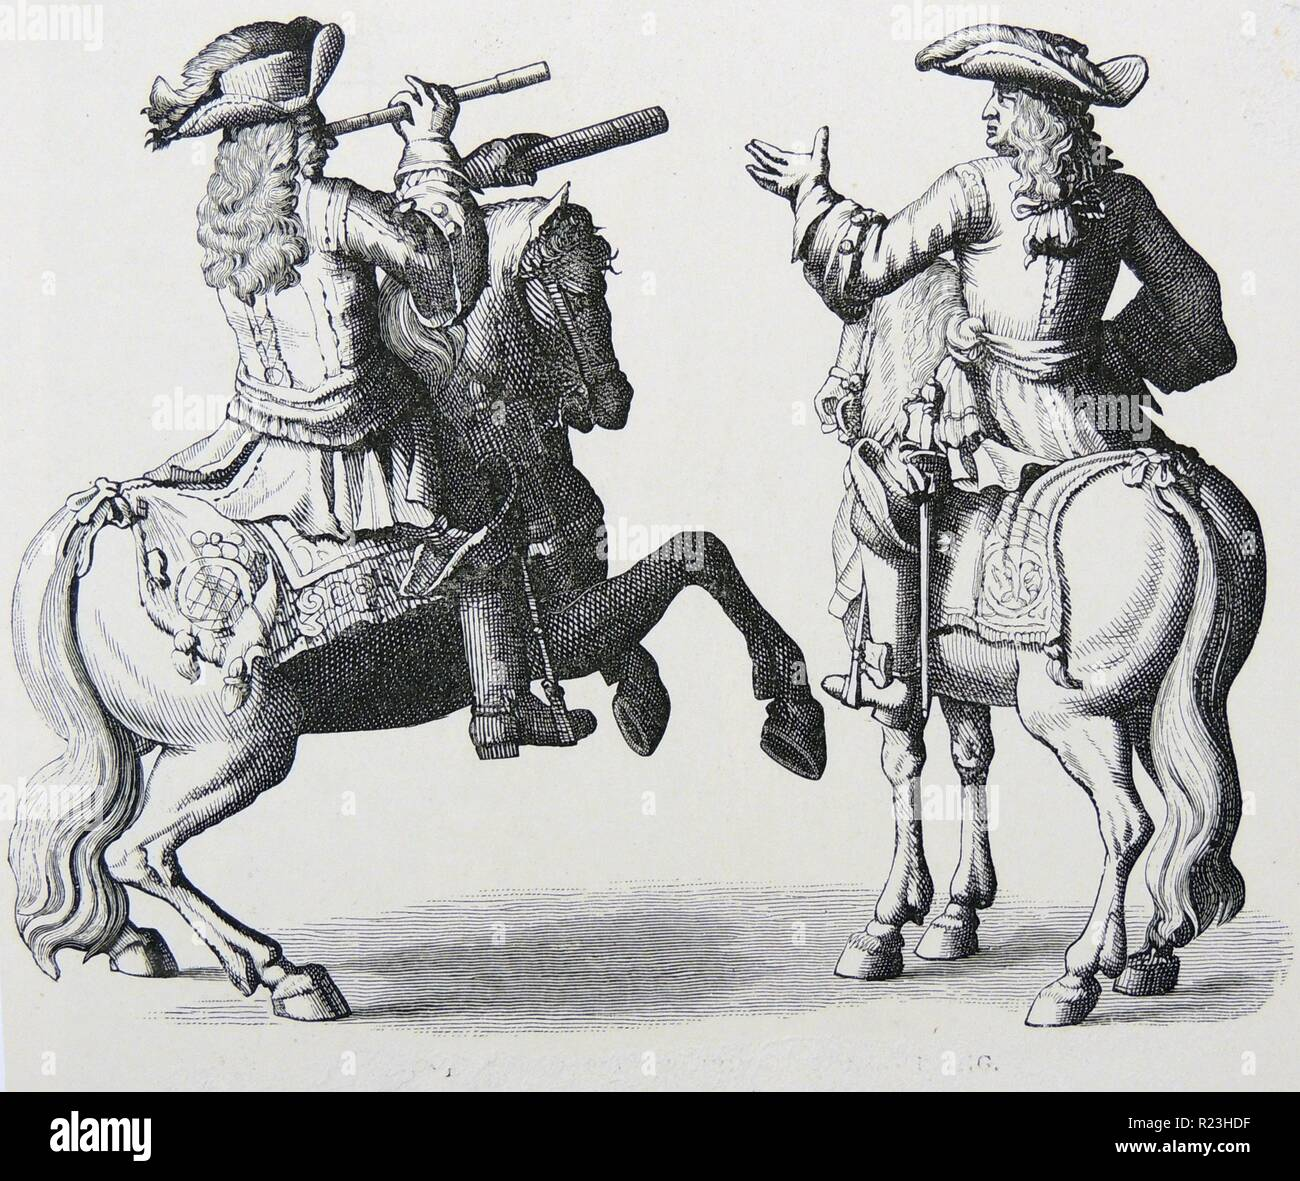 John Churchill, 1st Duke of Marlborough (1650-1722) right, and Prince Eugene of Savoy, reconnoitering during the War of the Spanish Succession (1701-1714). - Stock Image